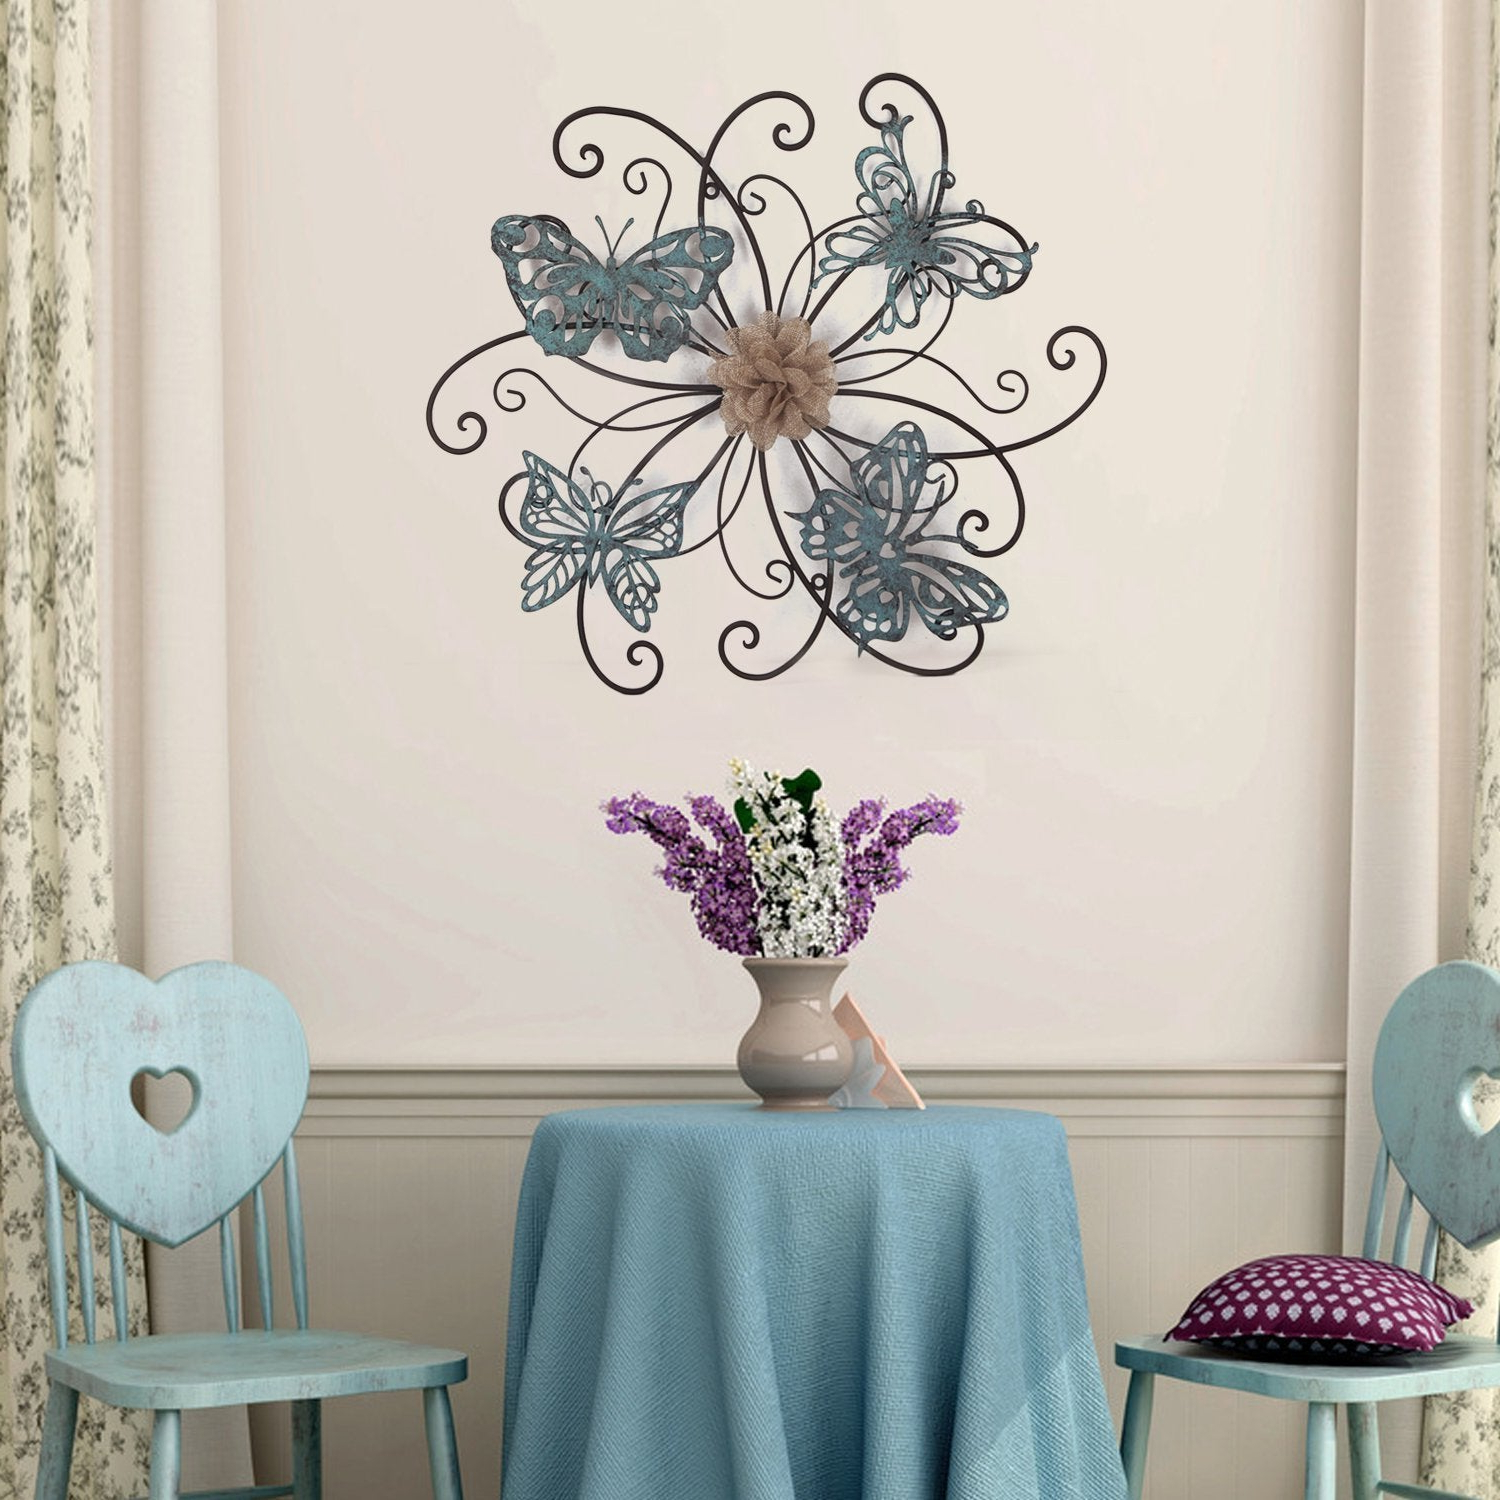 Flower Urban Design Metal Wall Decor Inside Current Shop Adeco Flower And Butterfly Urban Design Metal Wall Decor For (View 11 of 20)